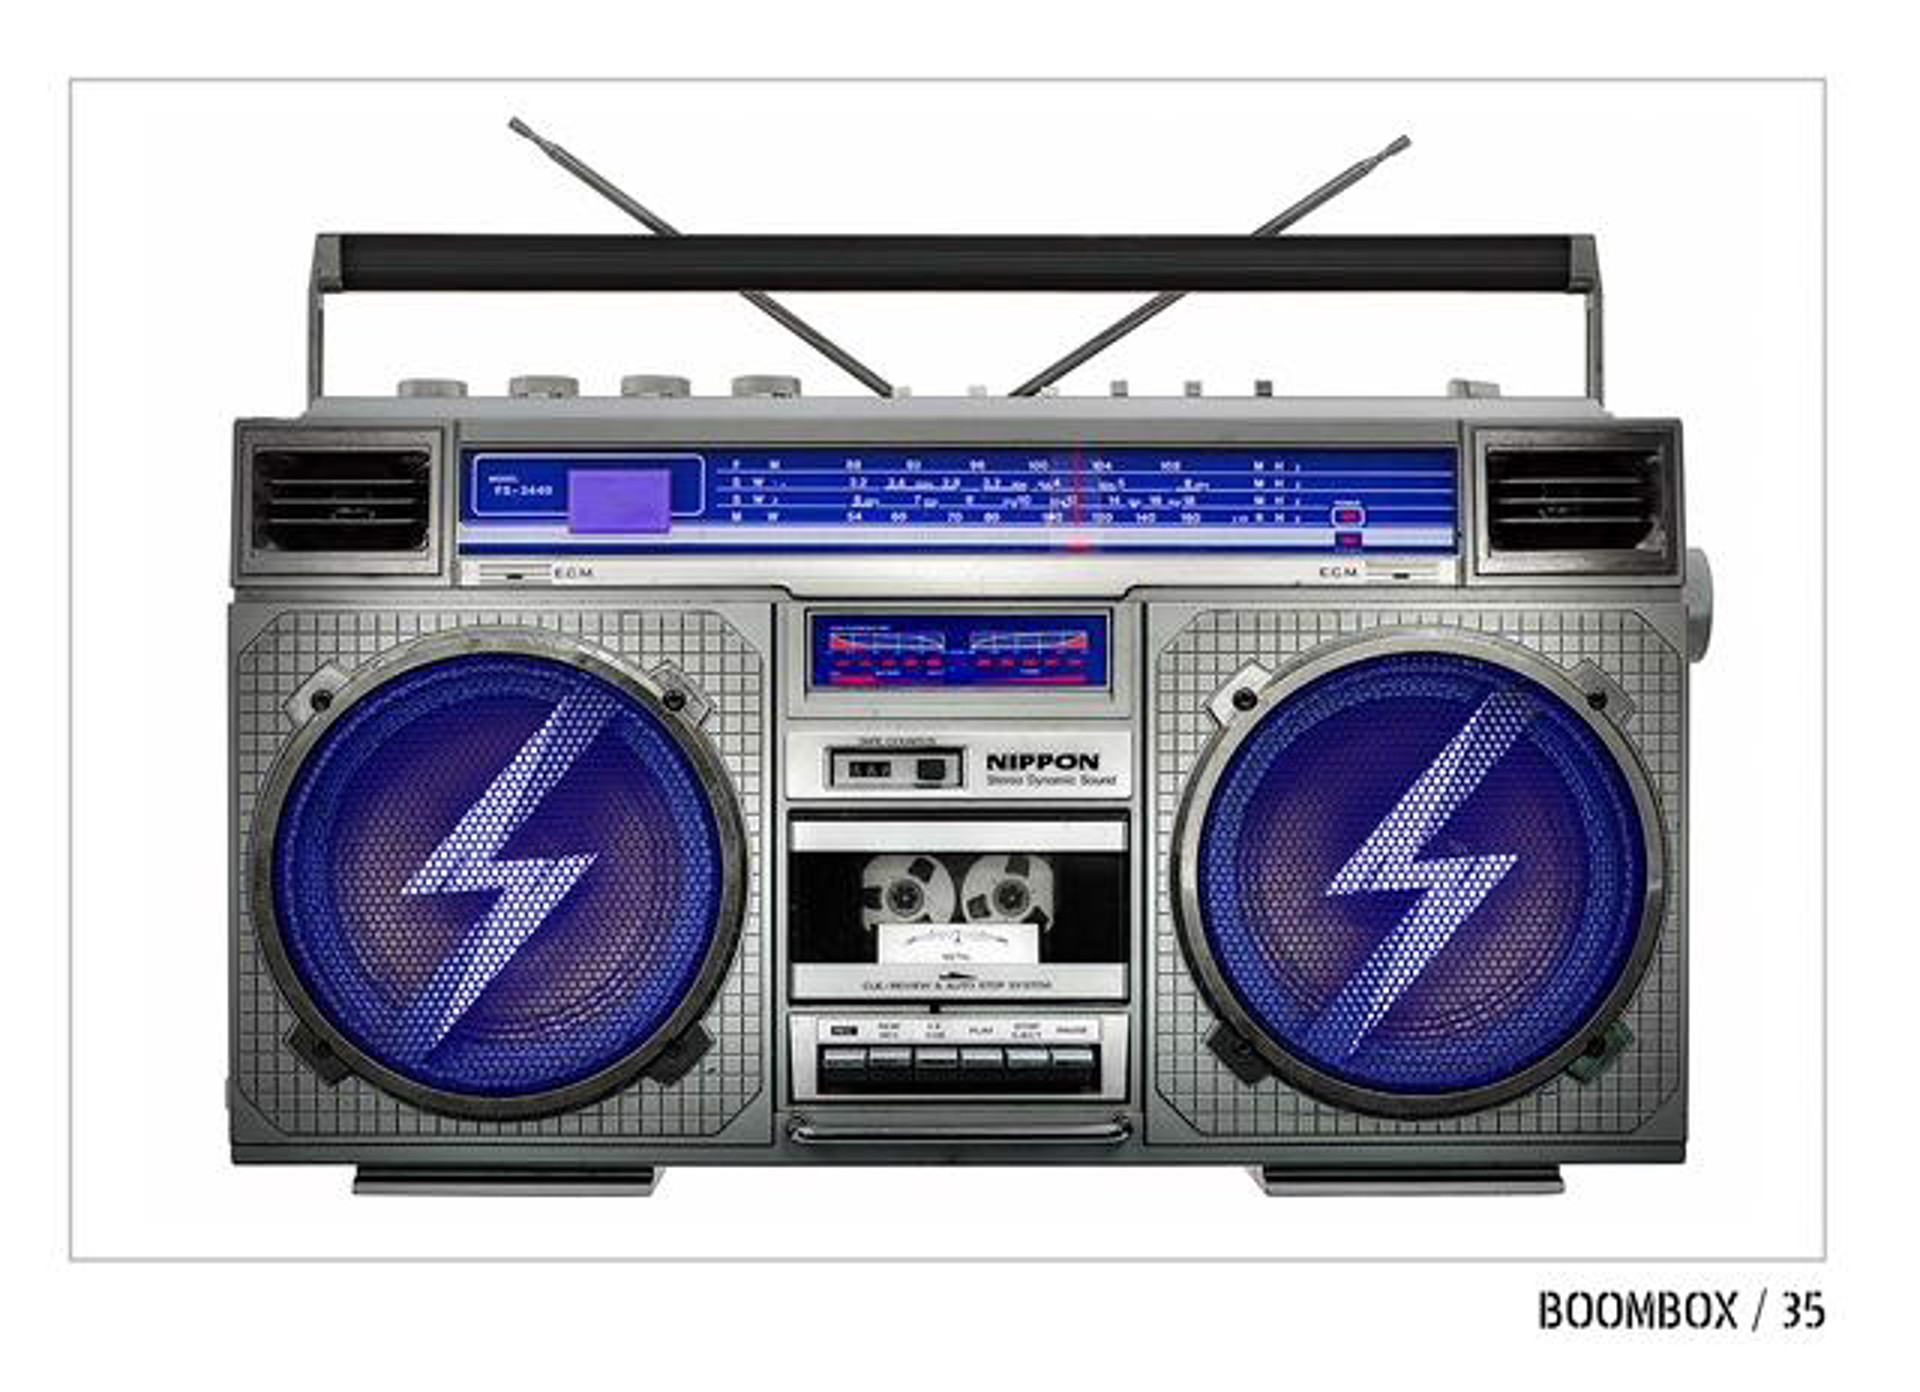 Boombox #35 by Lyle Owerko